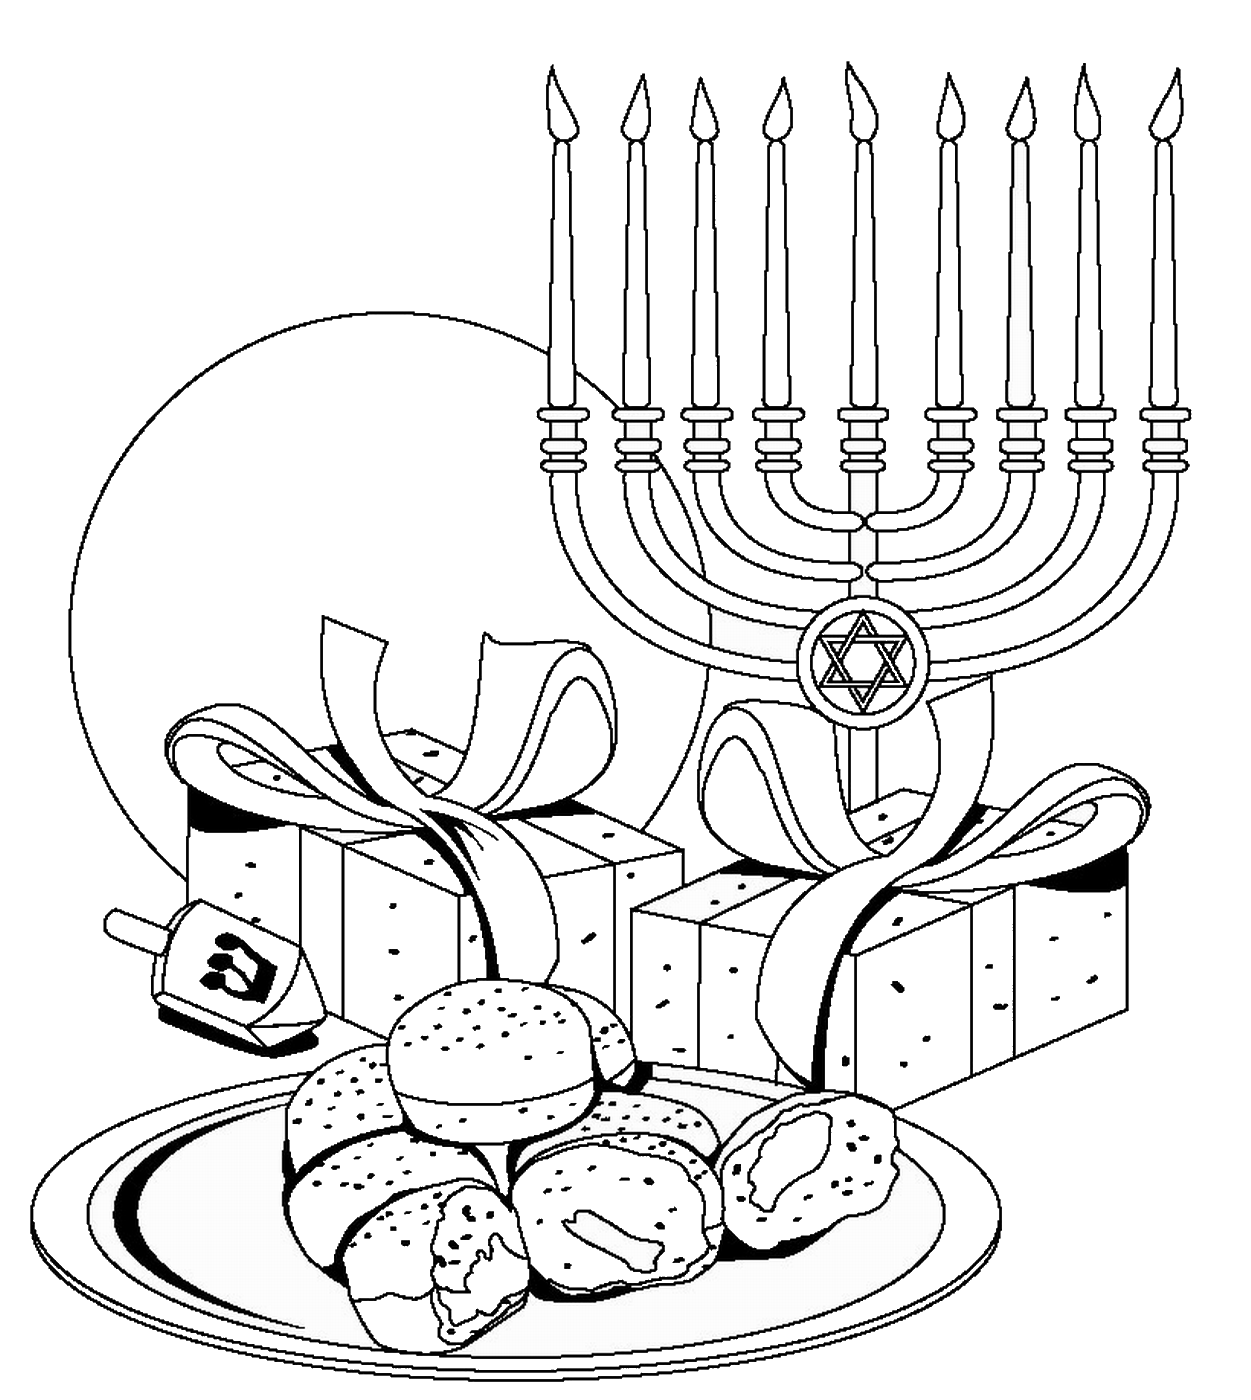 gelt coloring pages - photo#3